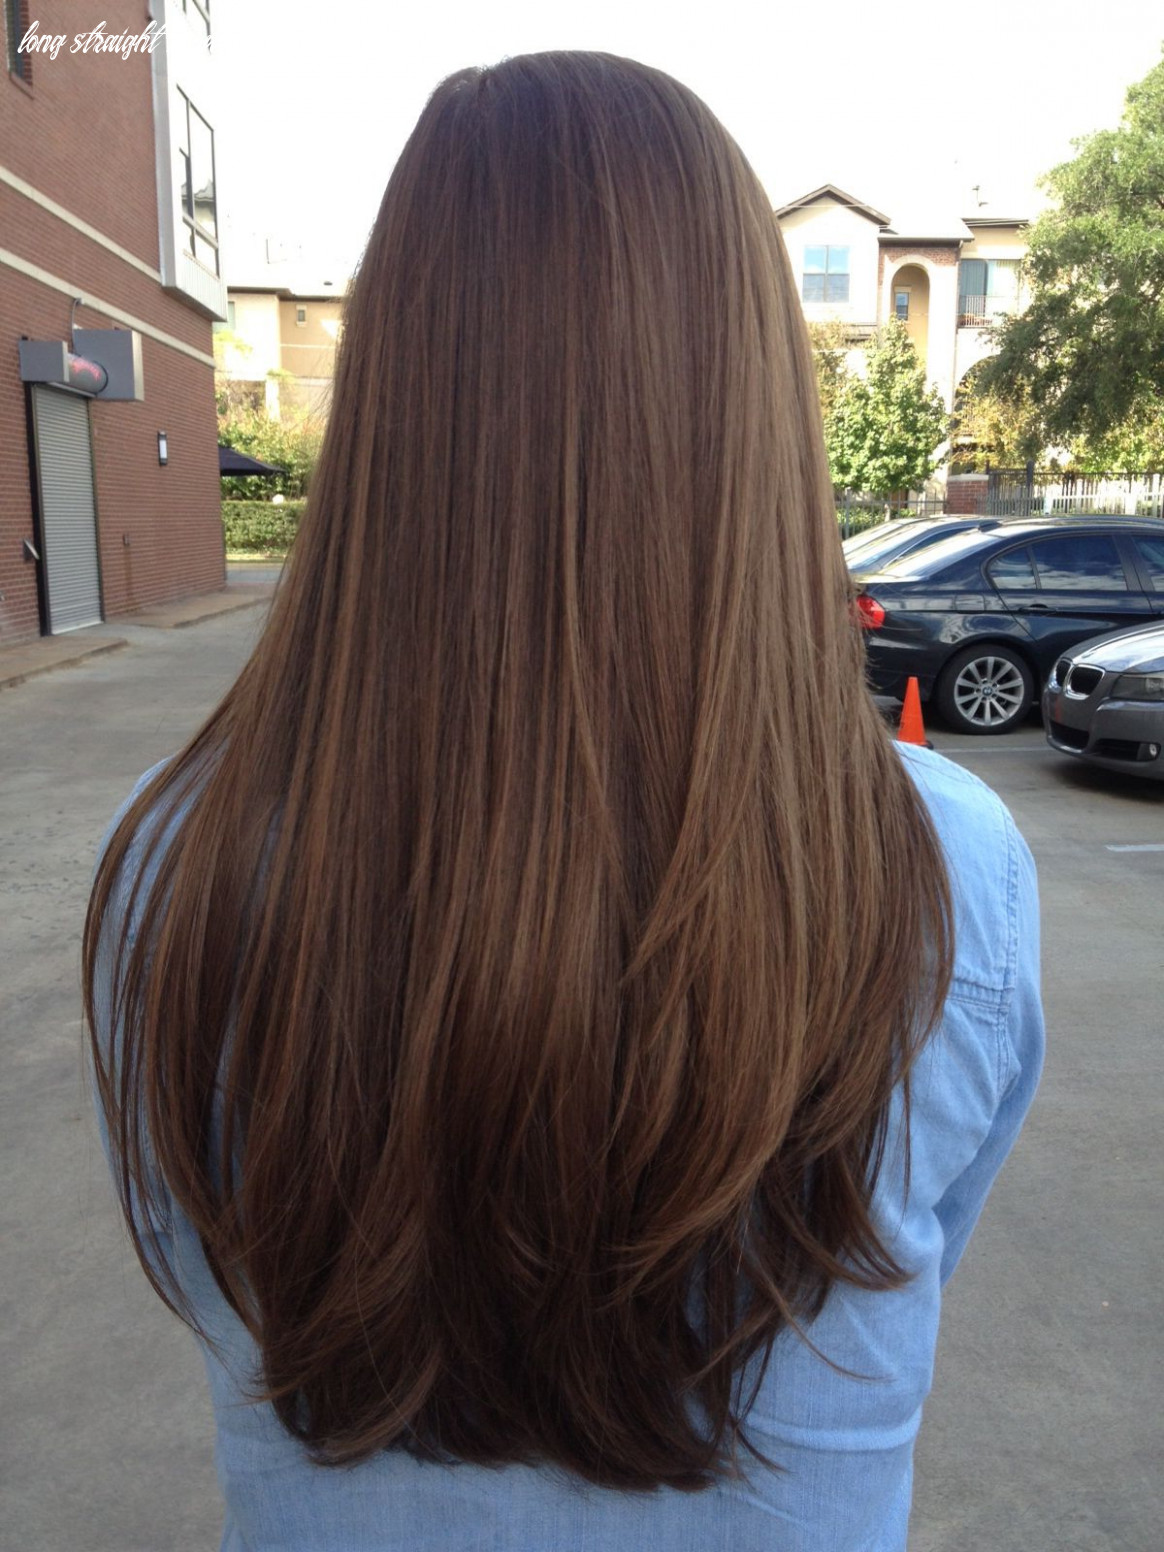 How to grow long beautiful hair | cabelo longo, cabelo comprido